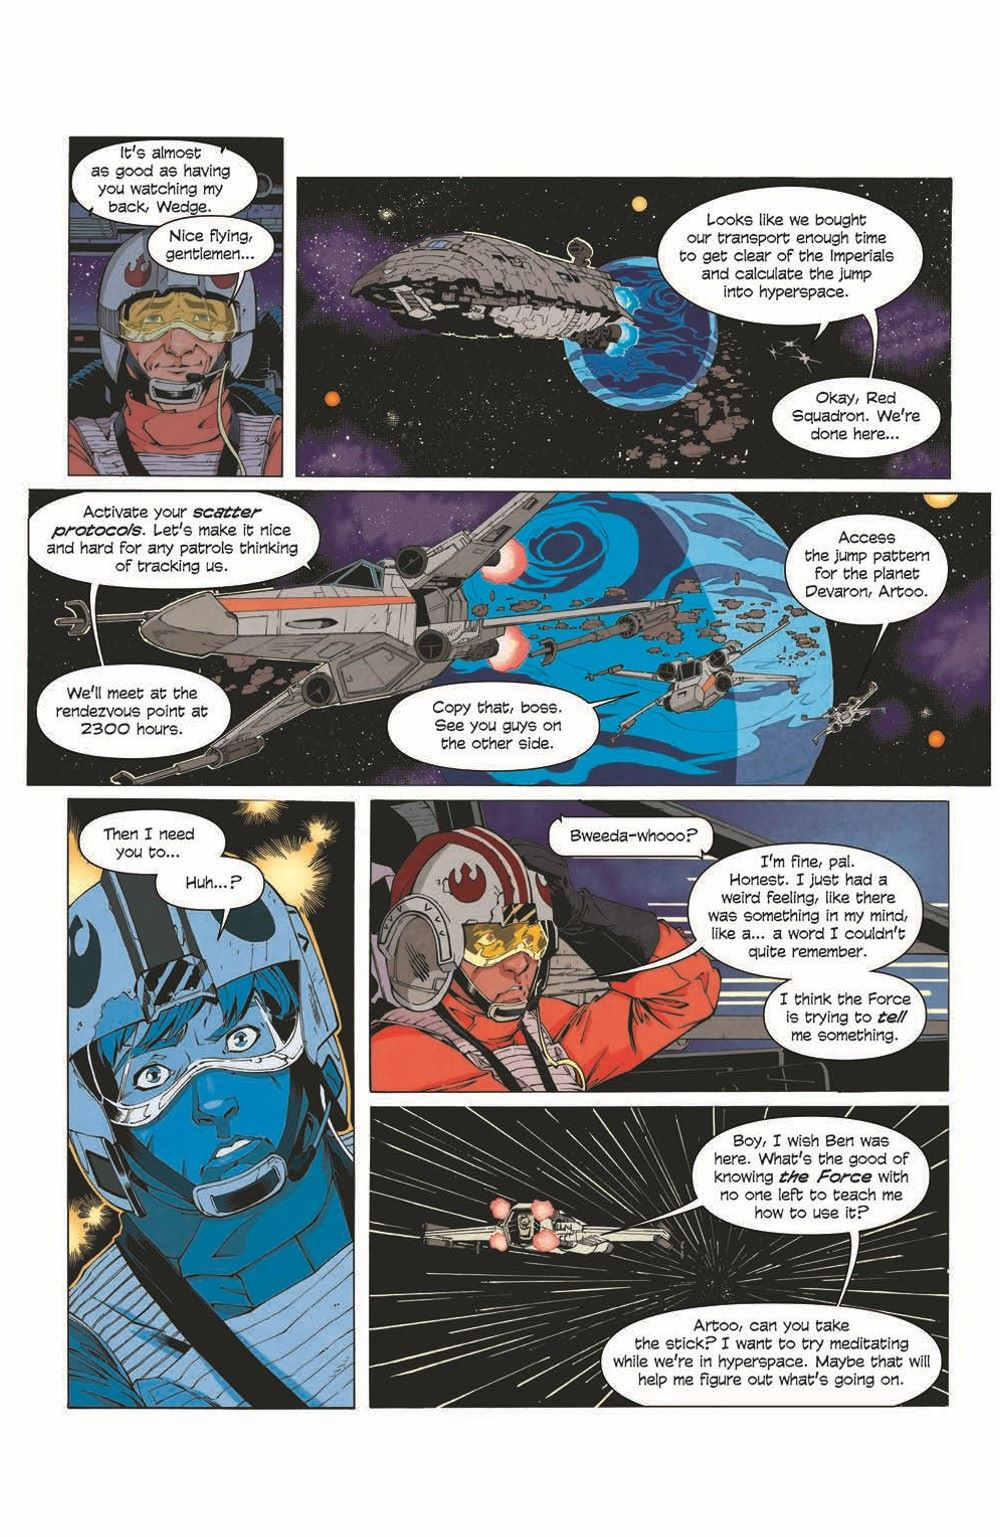 SWA_Weapons01_pr-5 ComicList Previews: STAR WARS ADVENTURES THE WEAPON OF A JEDI #1 (OF 2)